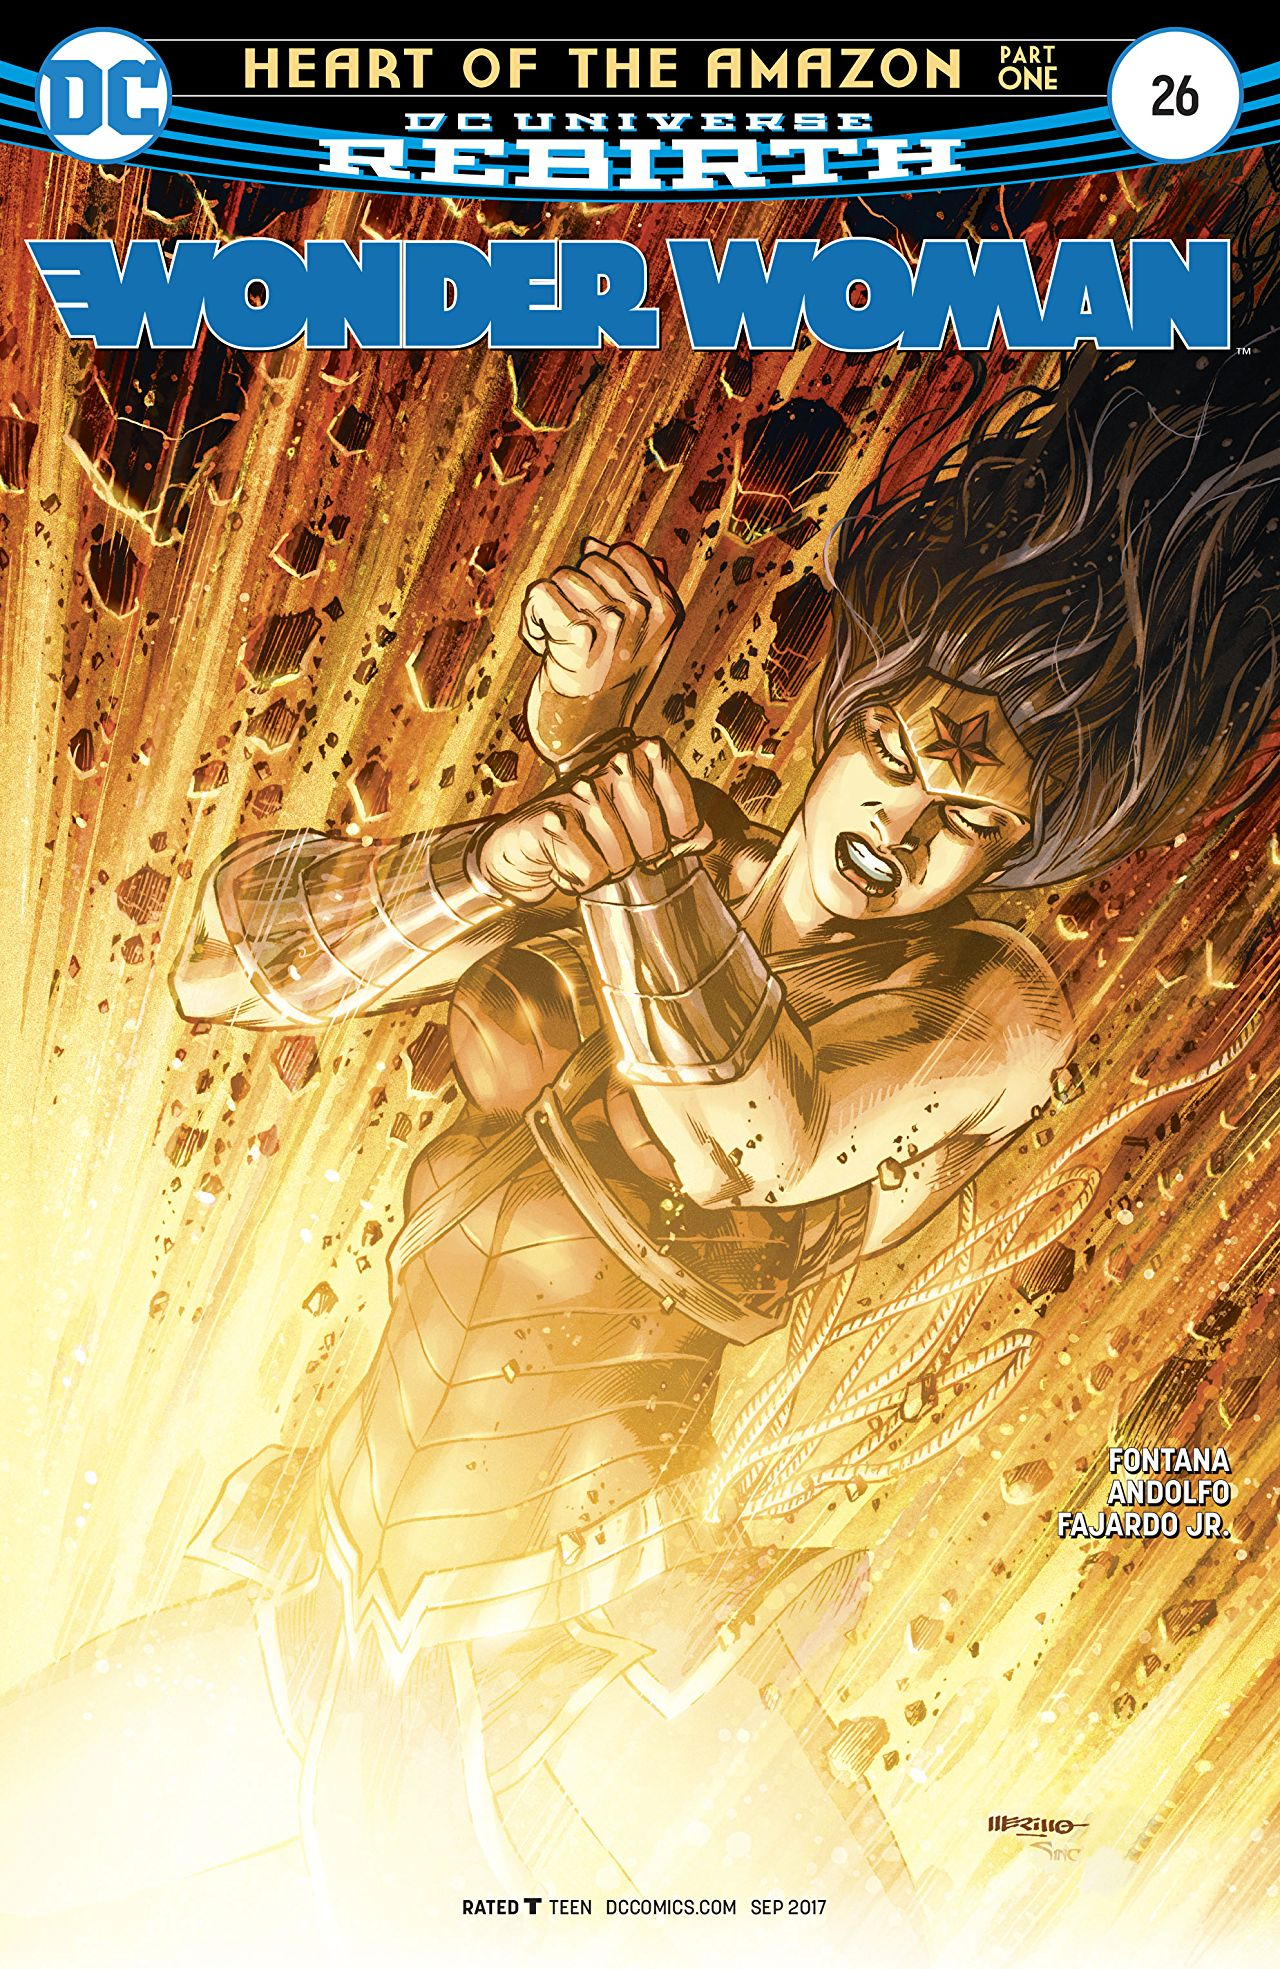 review WONDER WOMAN #26